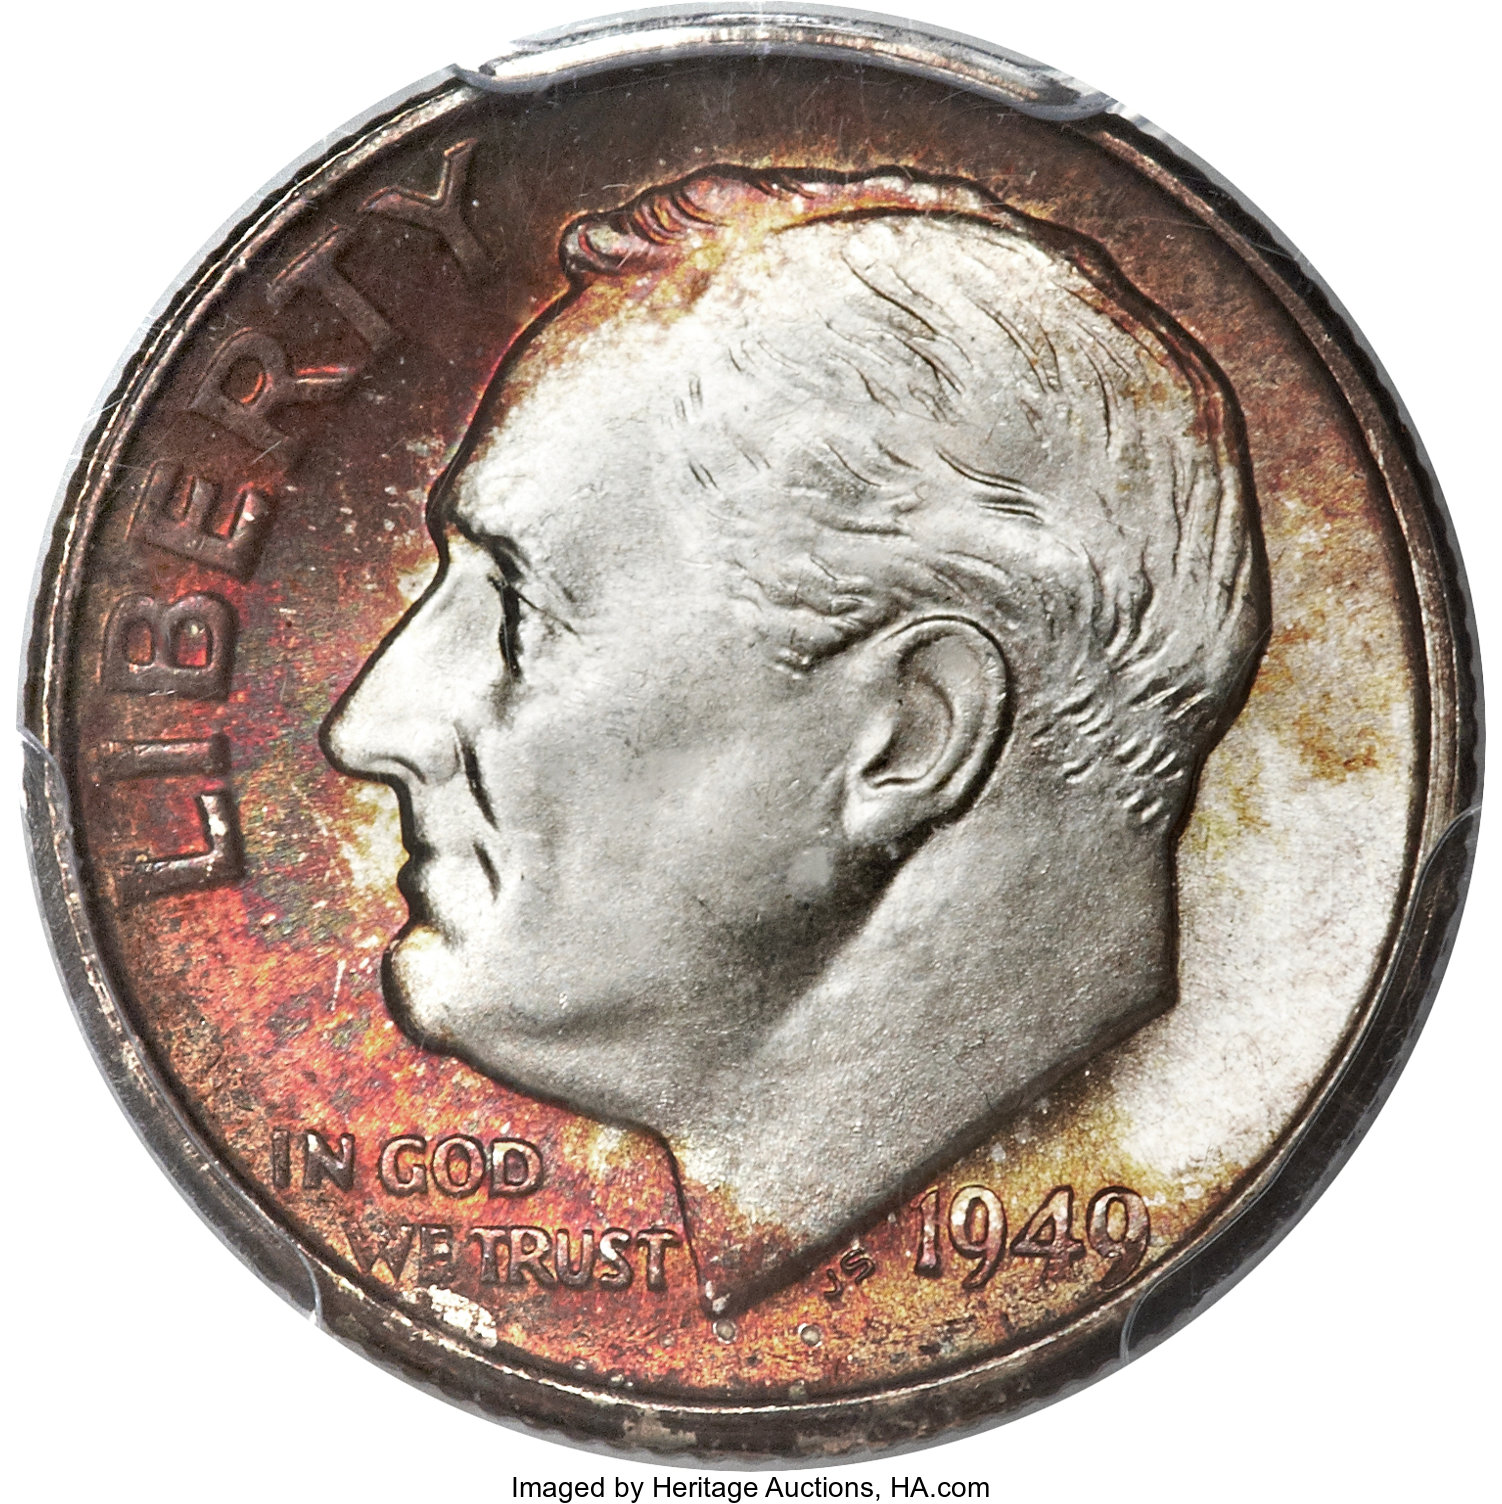 main image for Collecting Roosevelt Dimes: Making A Case For A Marvelous Modern Series